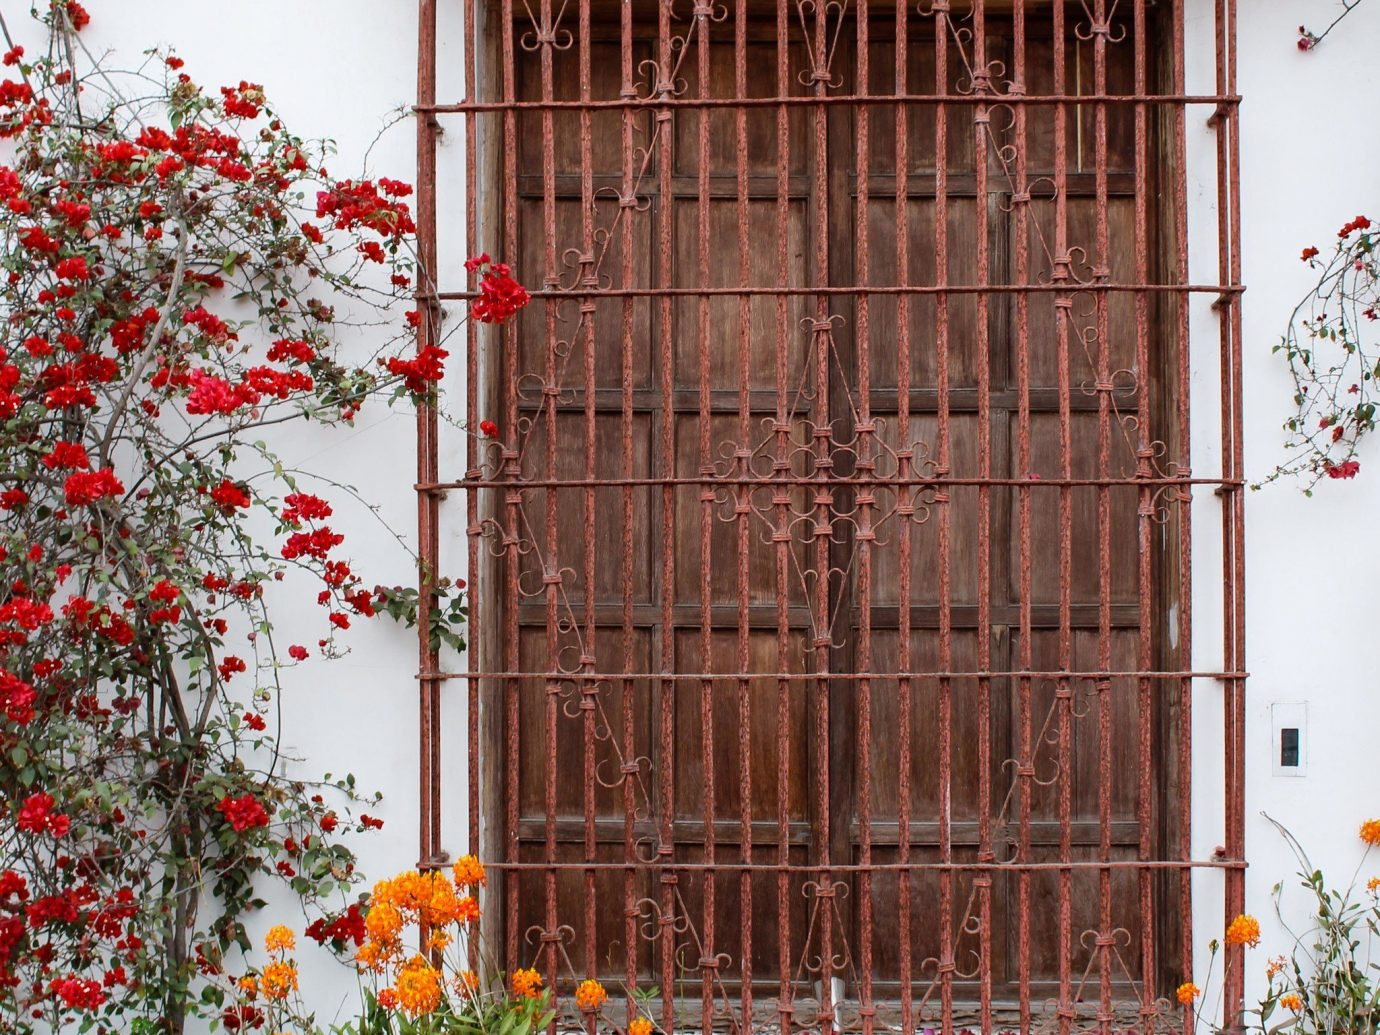 Travel Tips flower plant building window house door Architecture wall gate facade home outdoor structure tree decorated Garden